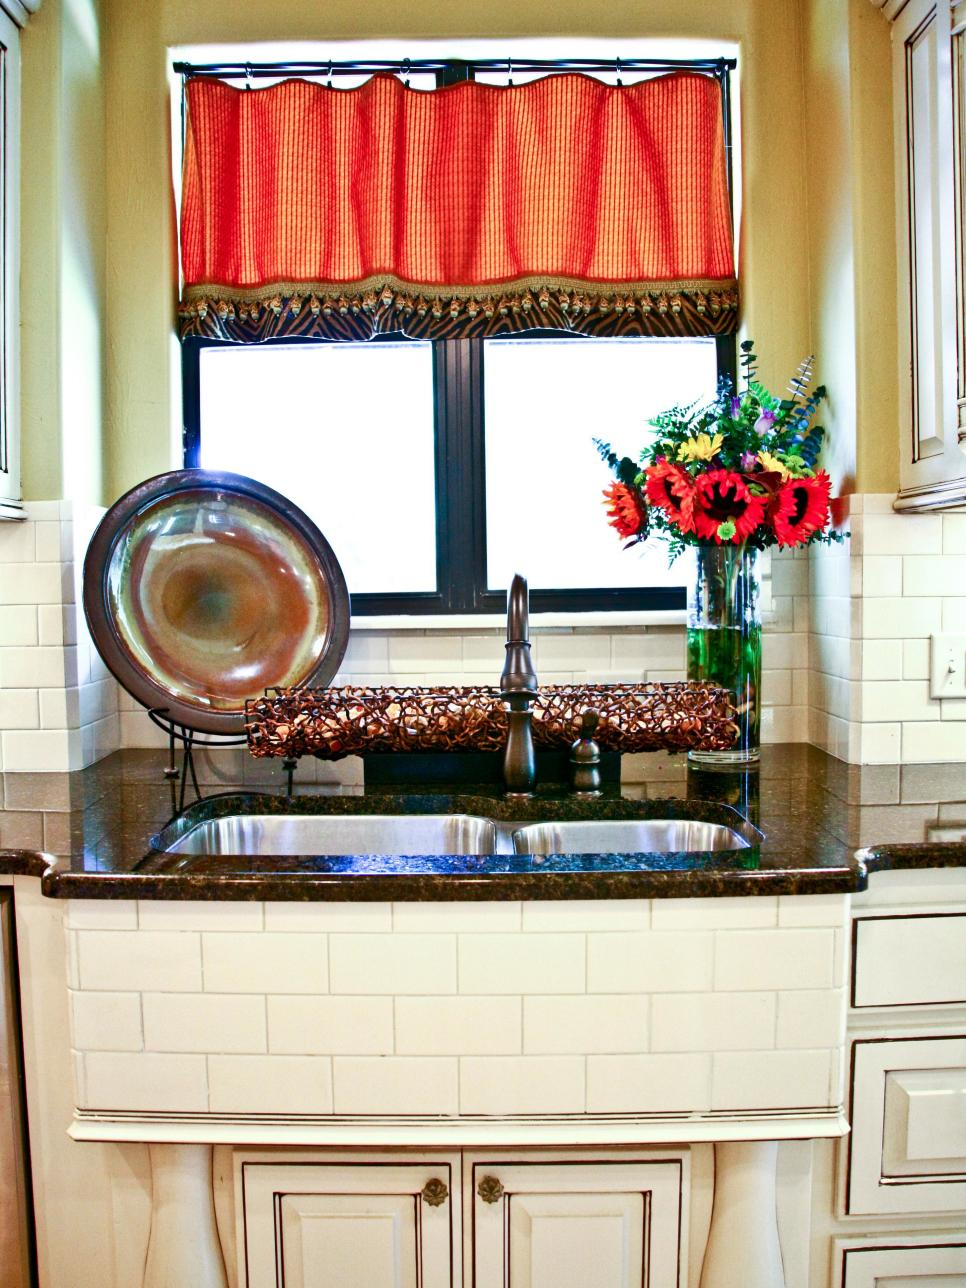 Neutral Kitchen With White Subway Tile and Red Valance